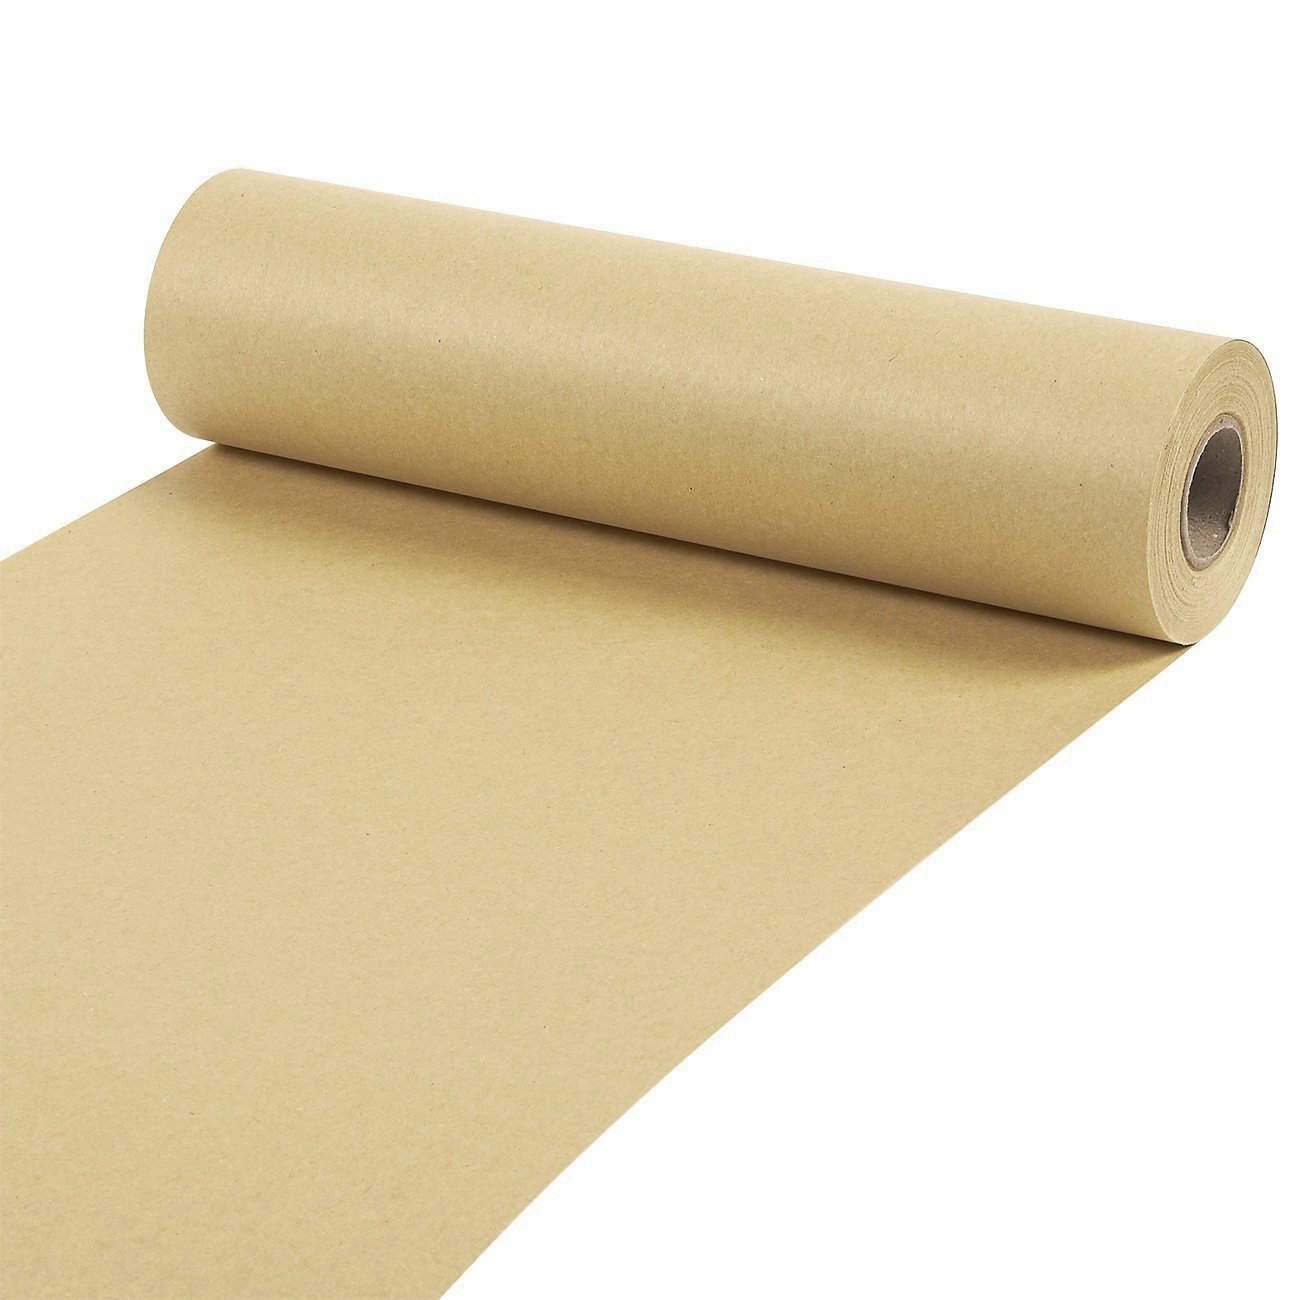 Kraft Paper Roll - Jumbo Packing Paper, 100 Feet Long Brown Kraft Paper Roll, for Craft, Gift Wrapping, Packing, Shipping, 10 x 1200 Inches